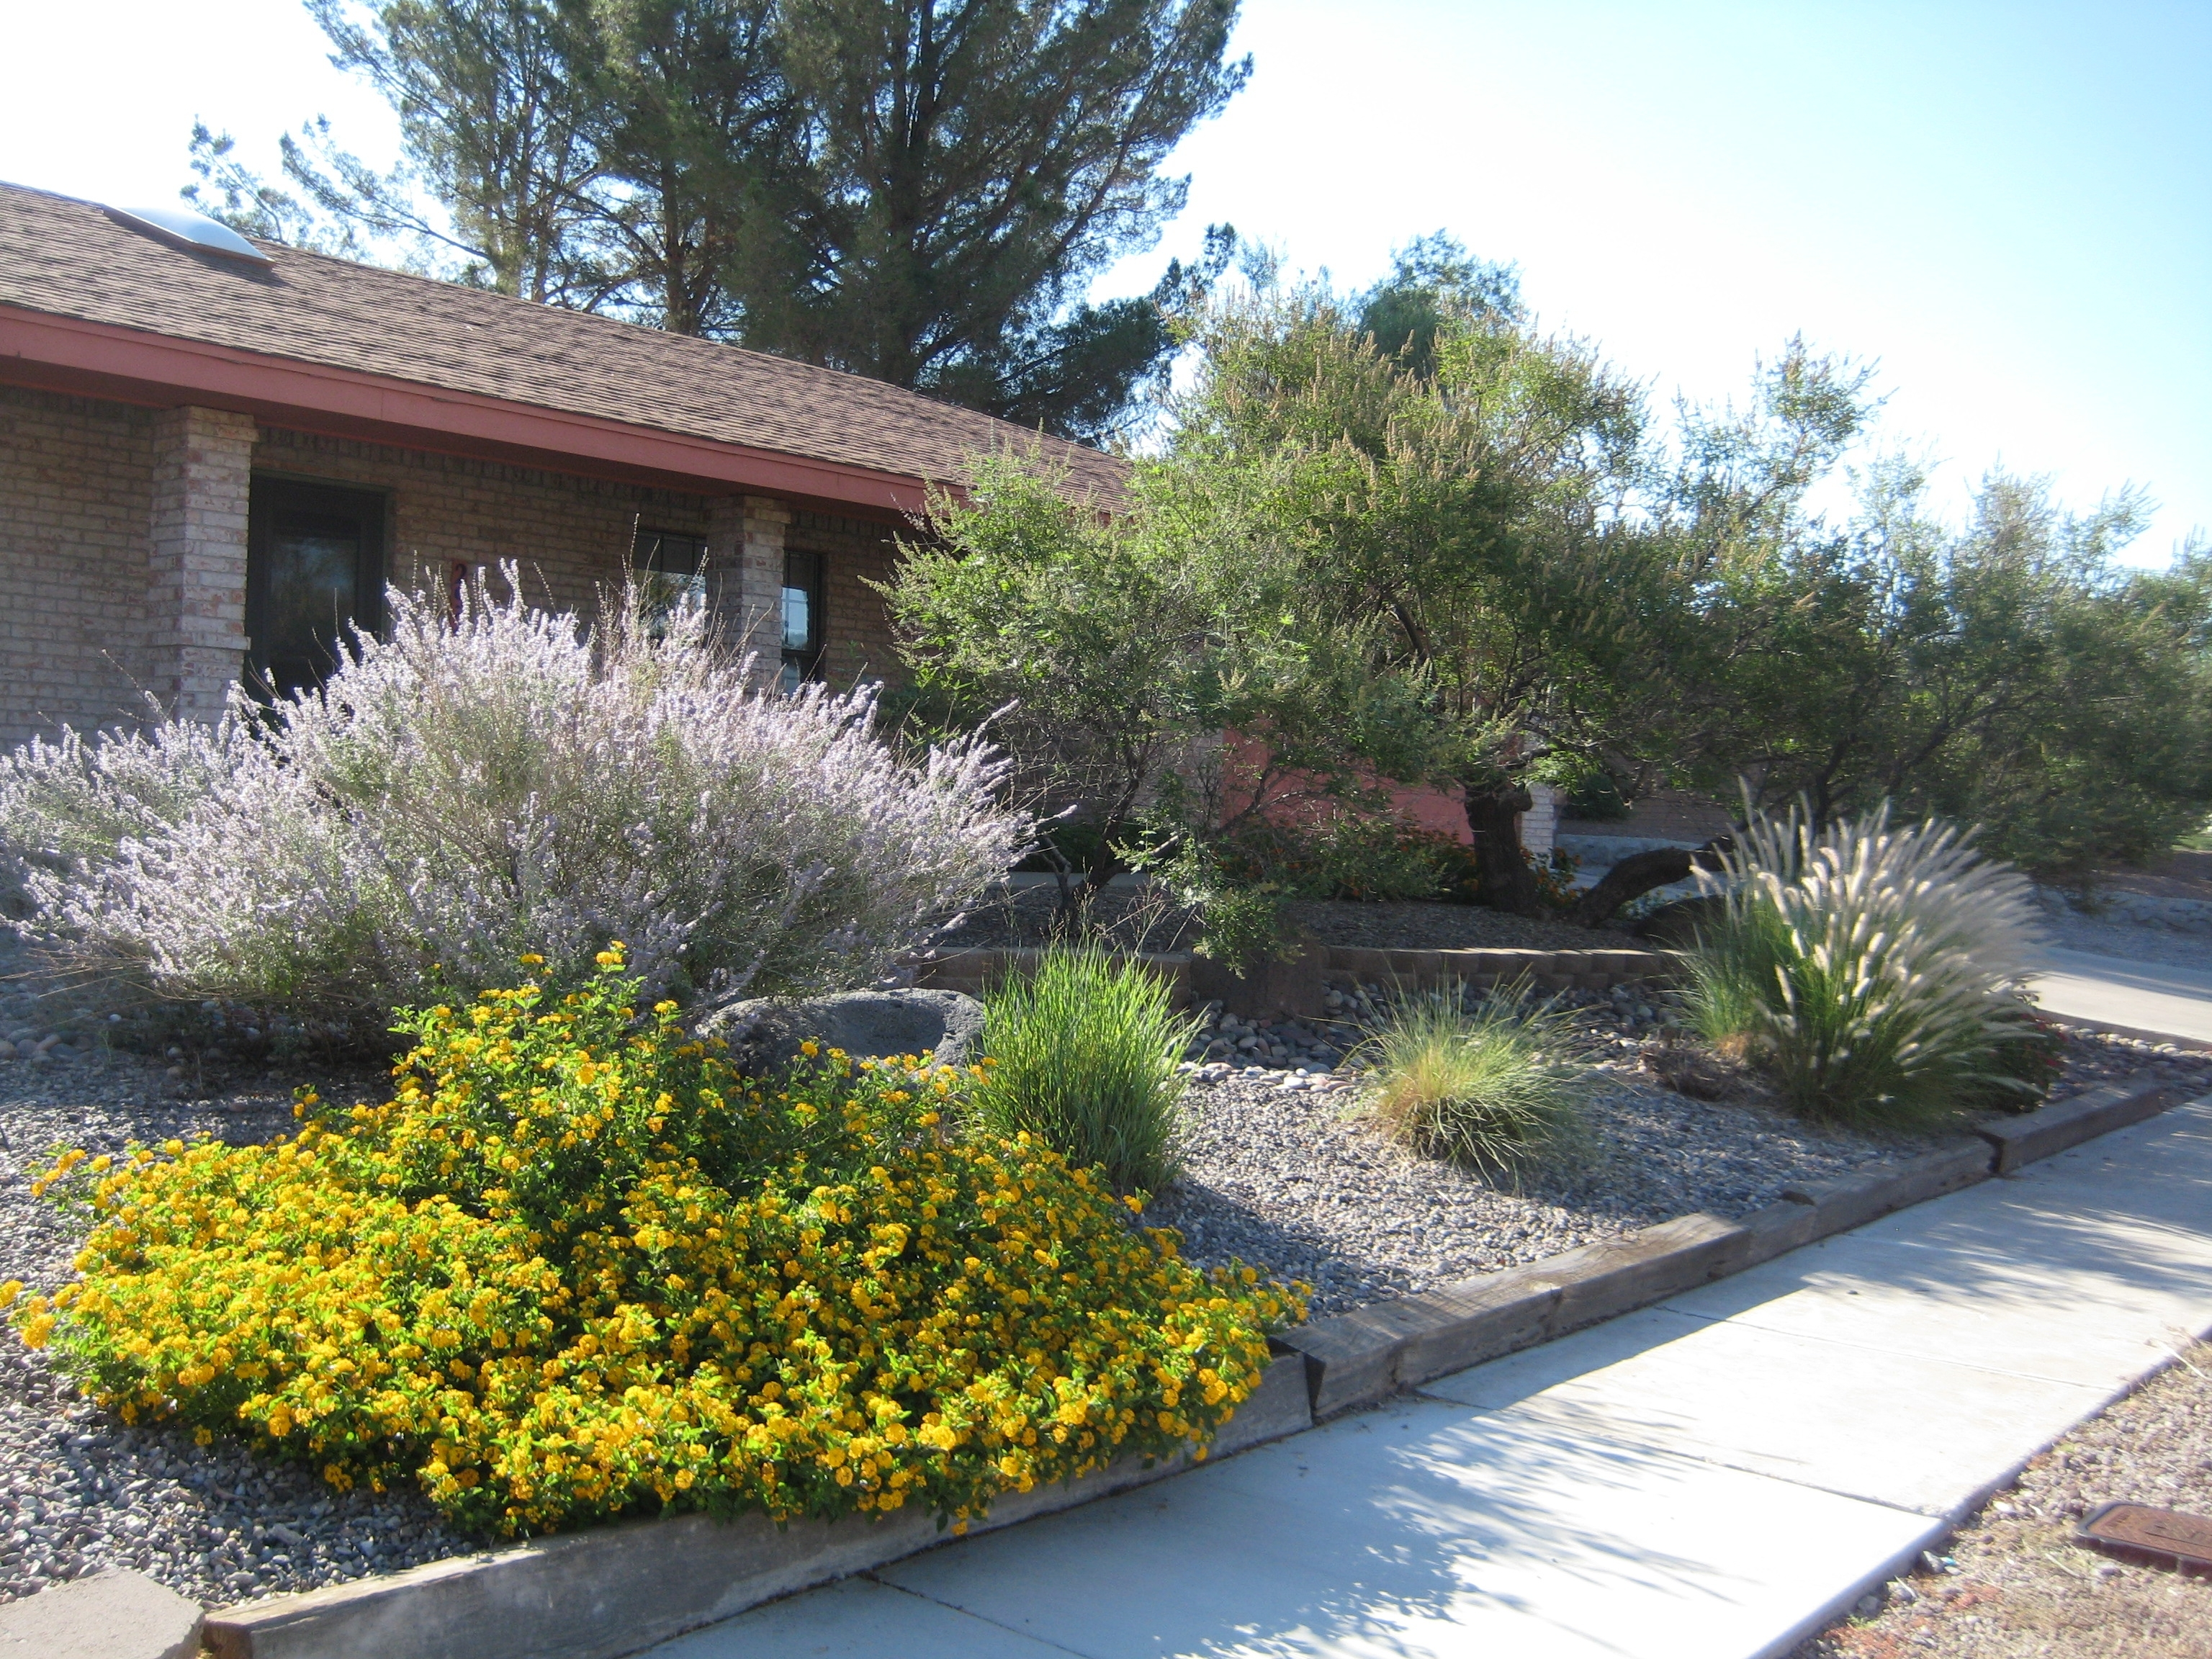 Image of: Xeriscaping Extension Master Gardener Within Xeriscape Landscaping Knowing About Xeriscape Landscaping